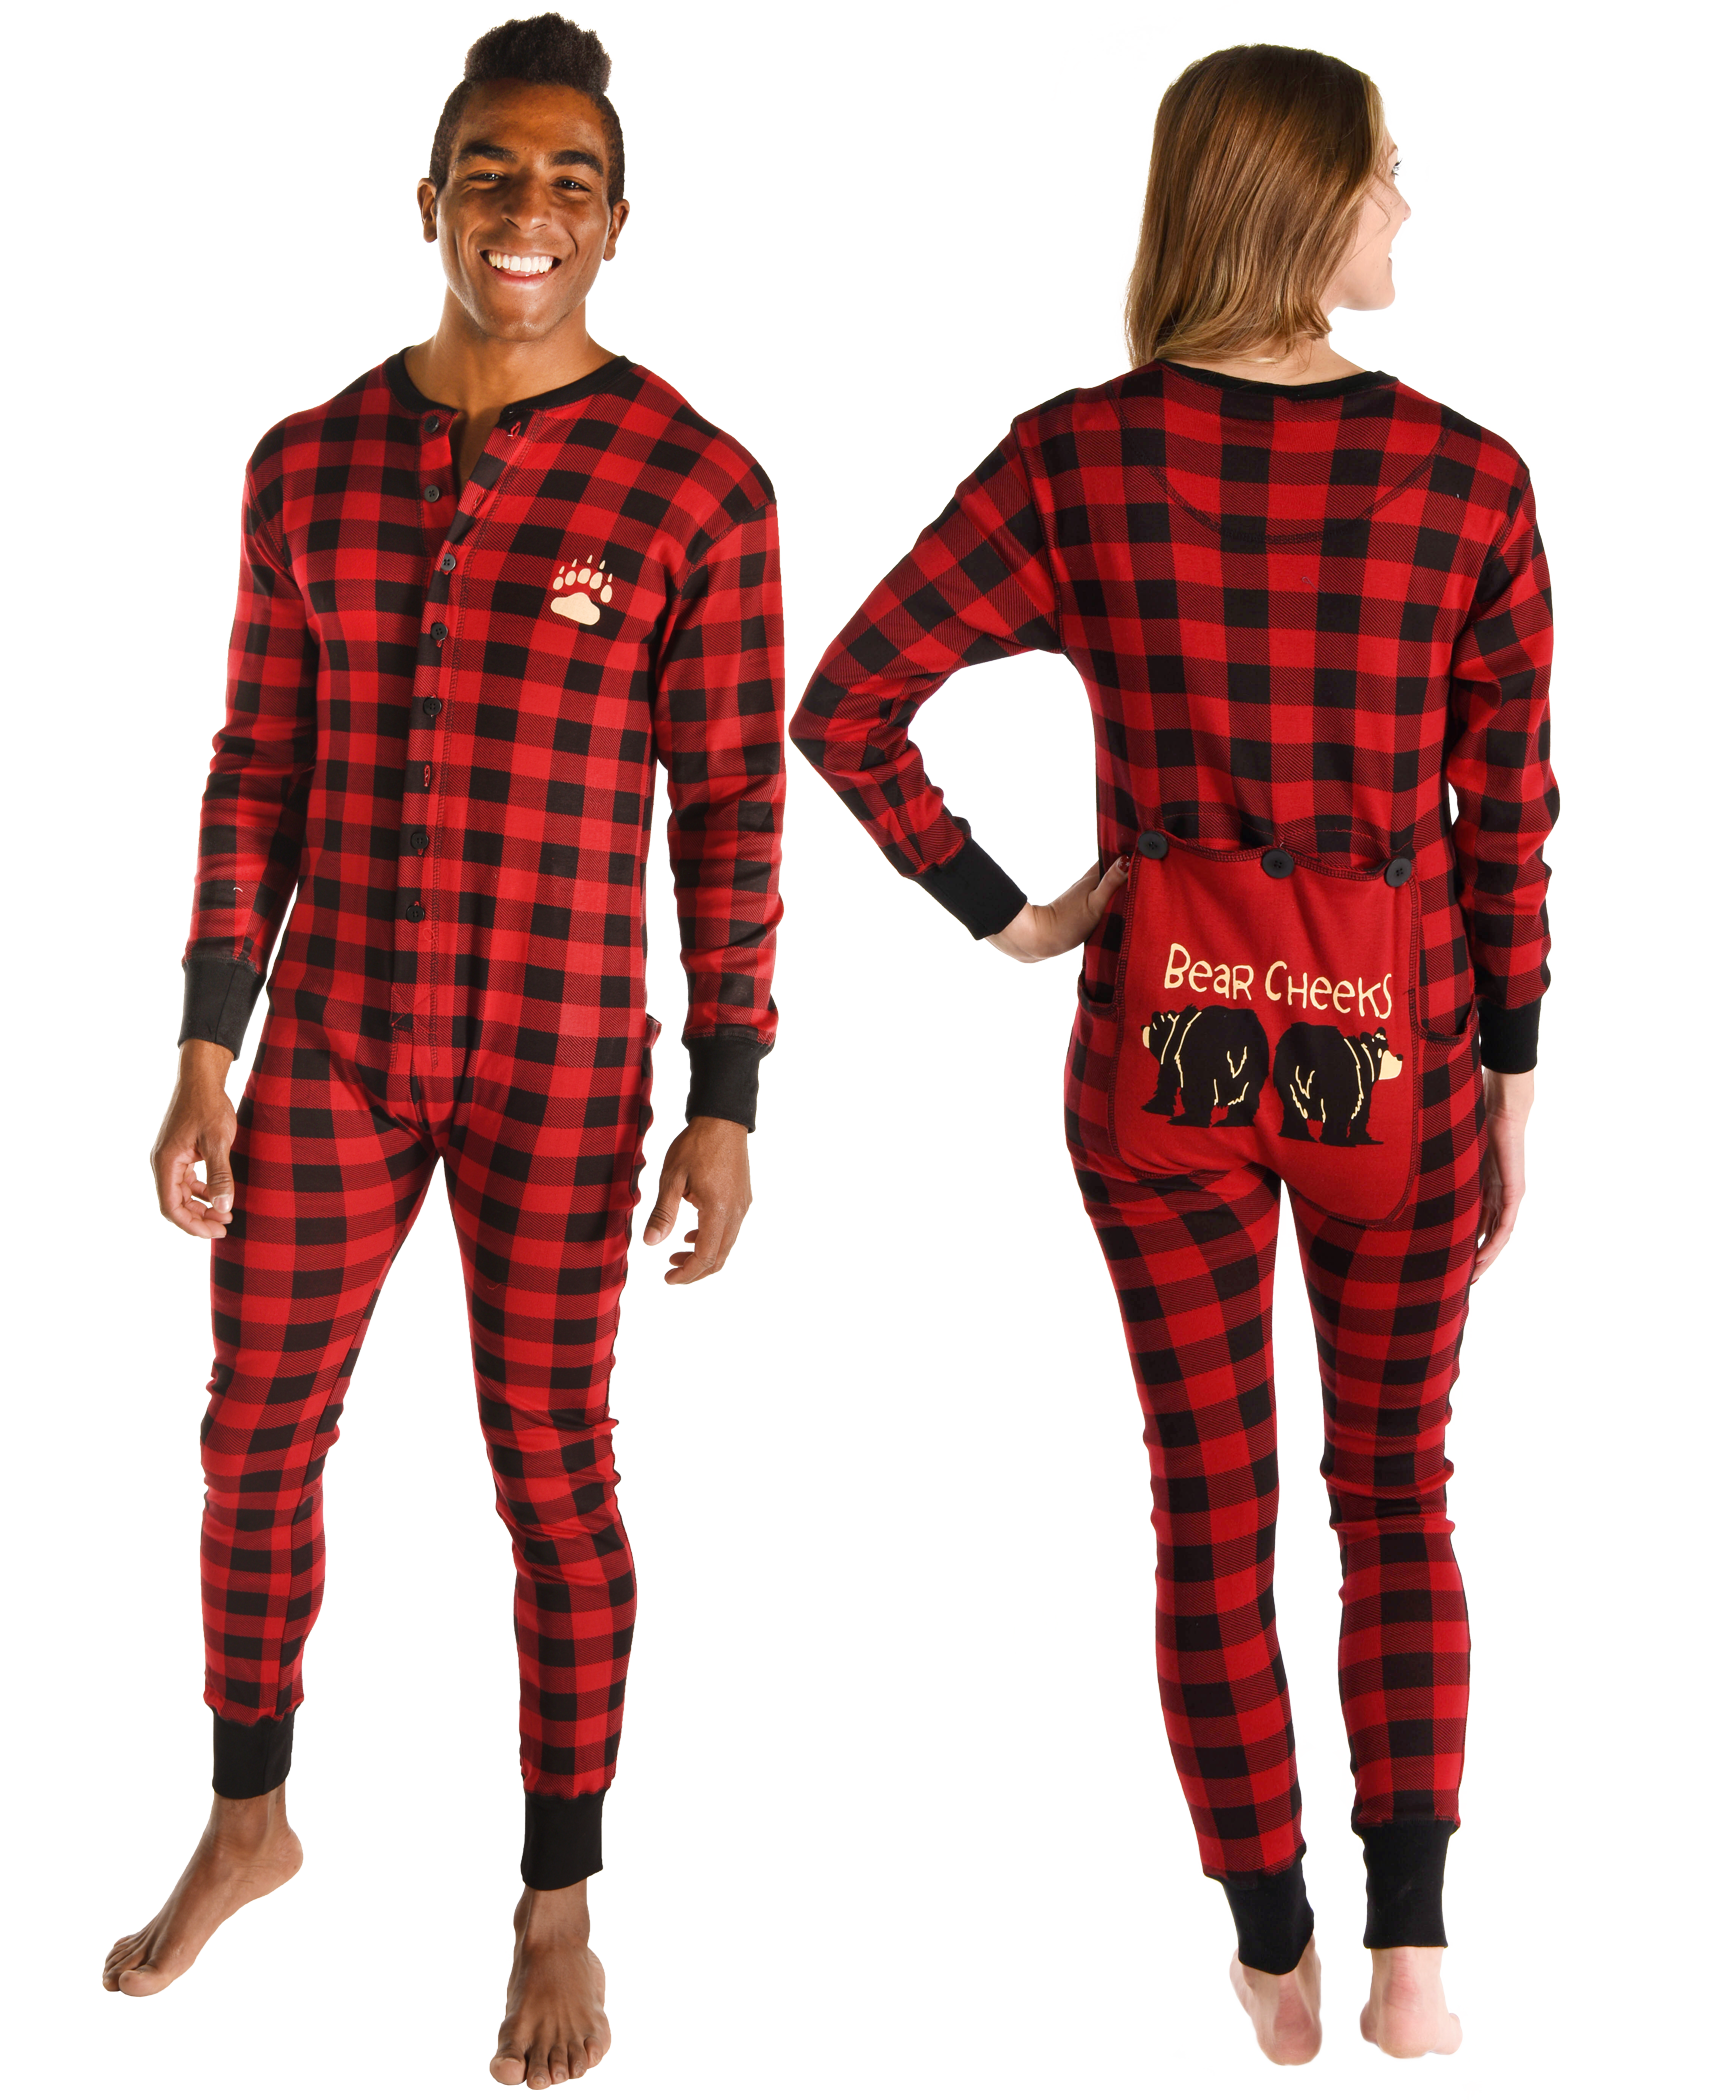 Bear Cheek Plaid Adult Onesie Flapjack Adult onesie